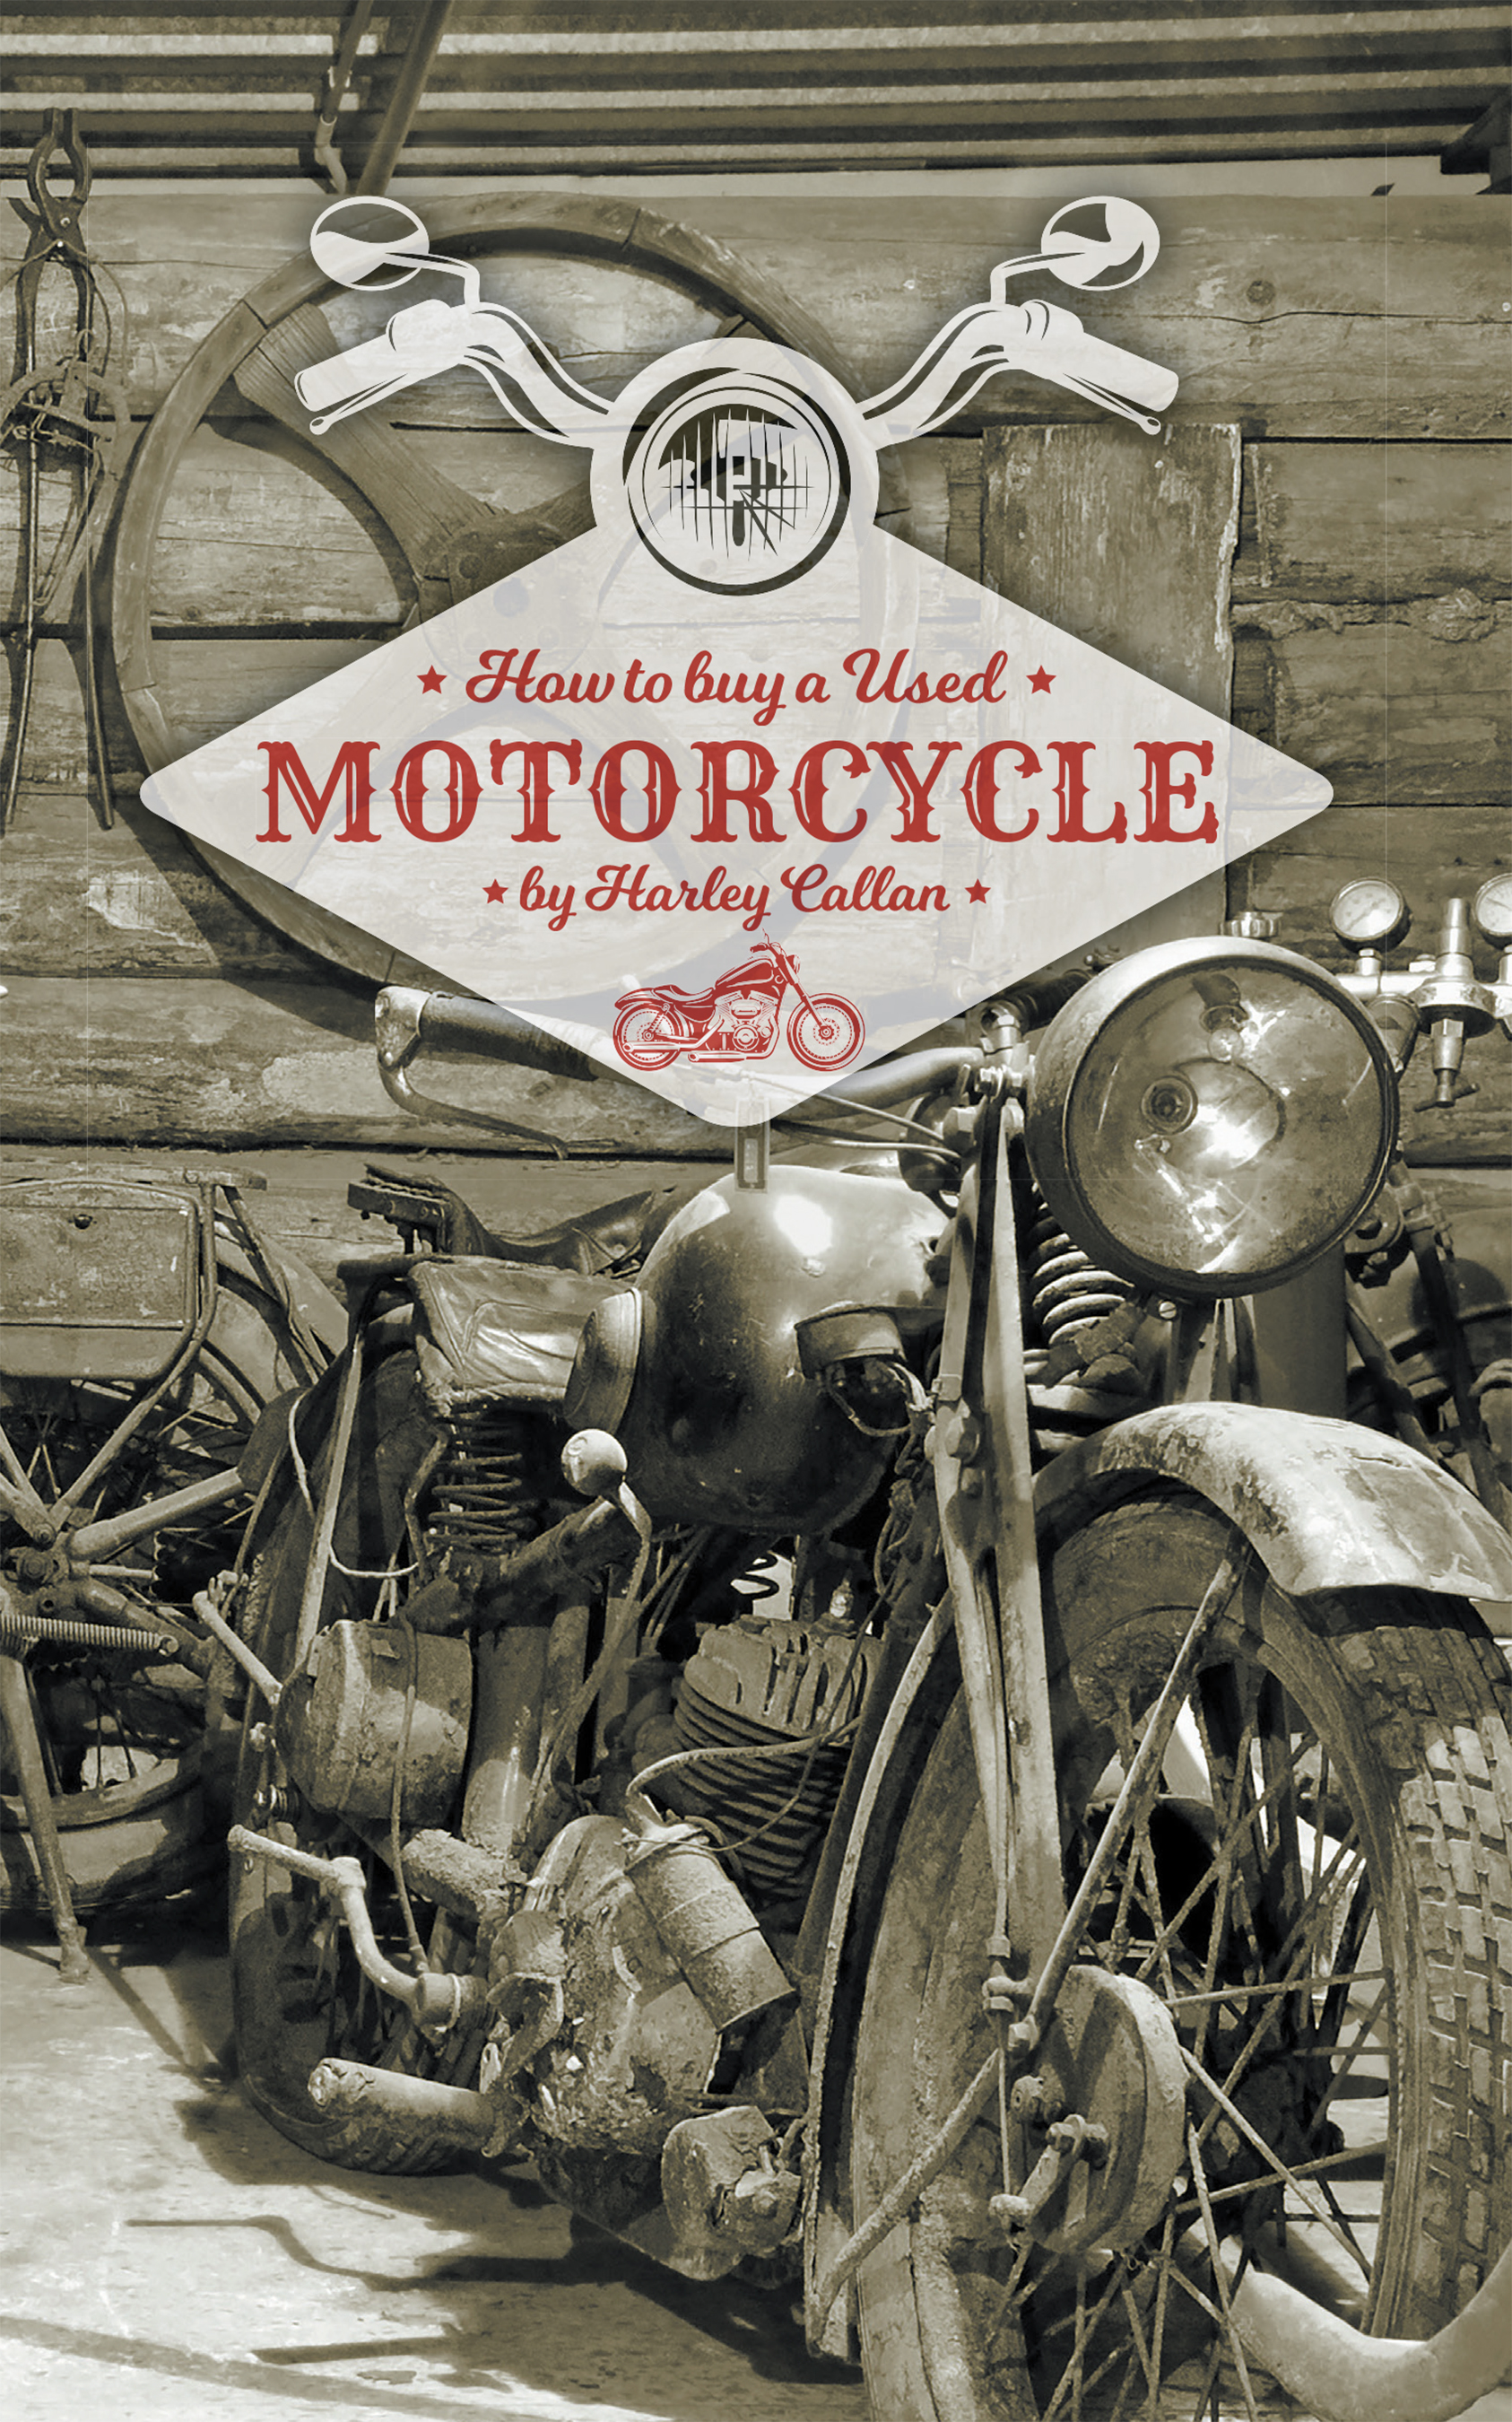 Buy Used Motorcycles >> How To Buy A Used Motorcycle An Ebook By Harley Callan